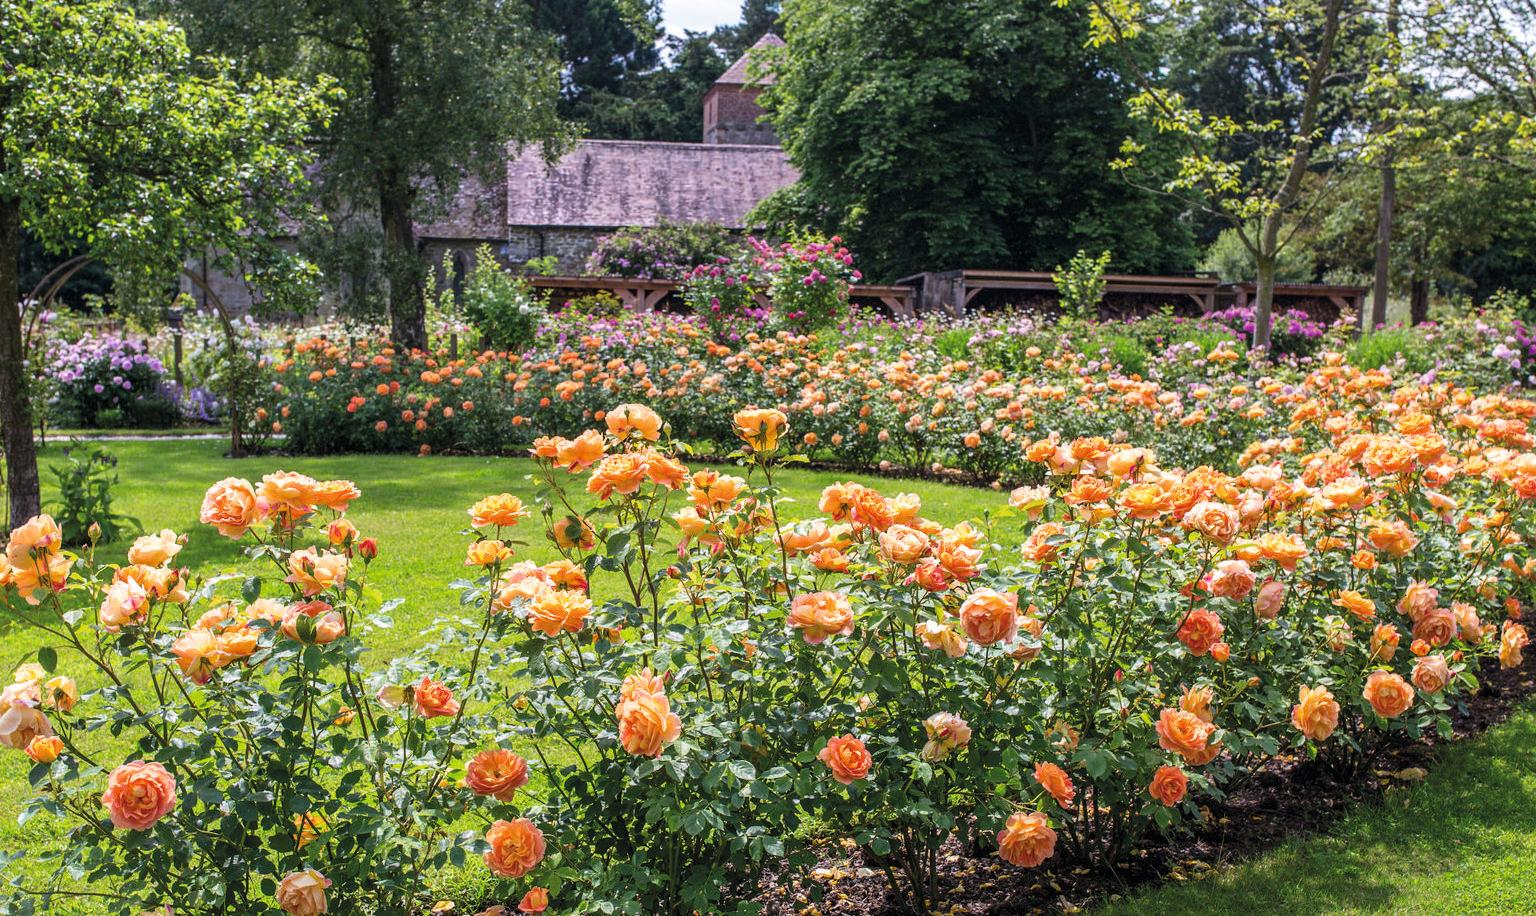 Orange English Shrub Rose Lady of Shalott planted in as a hedge in an English garden